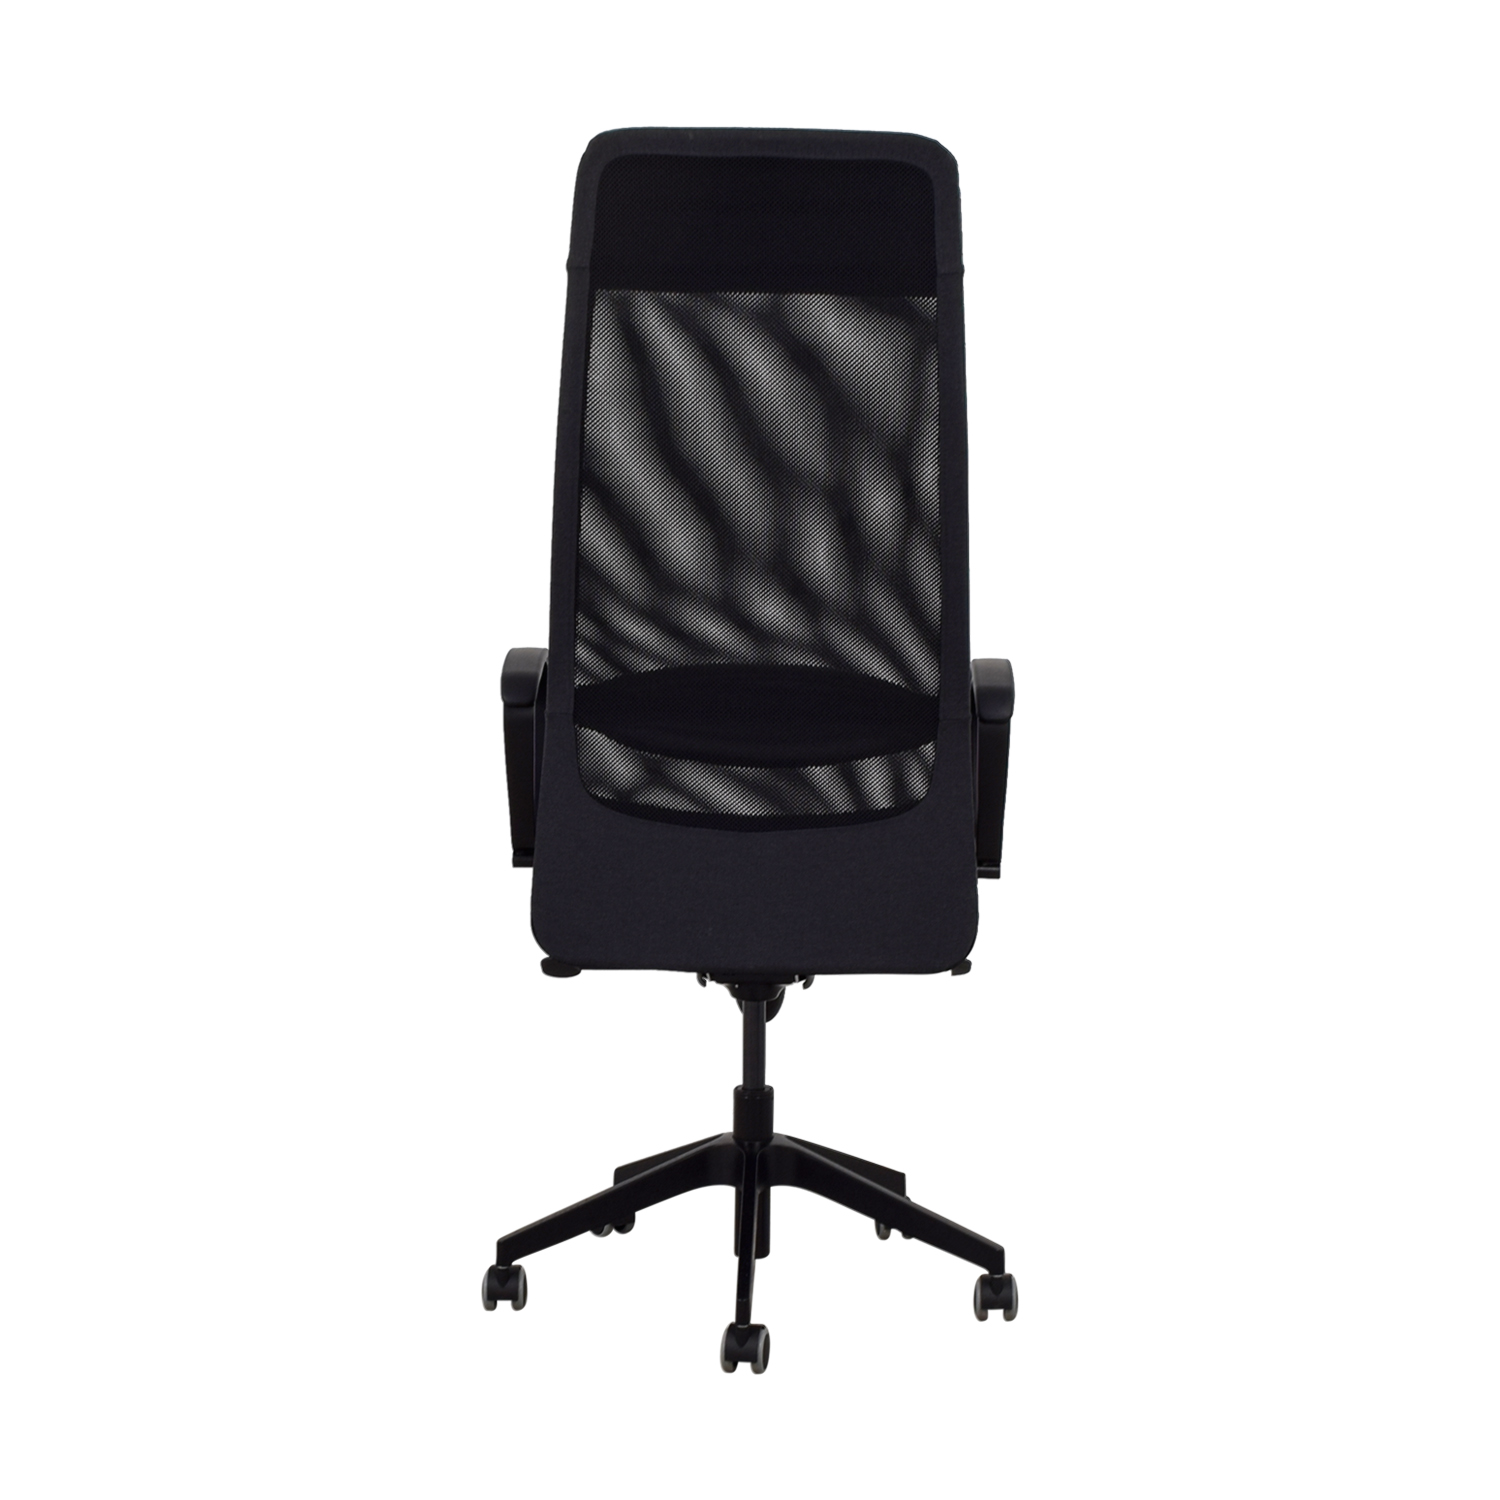 Black Office Chairs 68 Off Ikea Ikea Black Office Chair Chairs